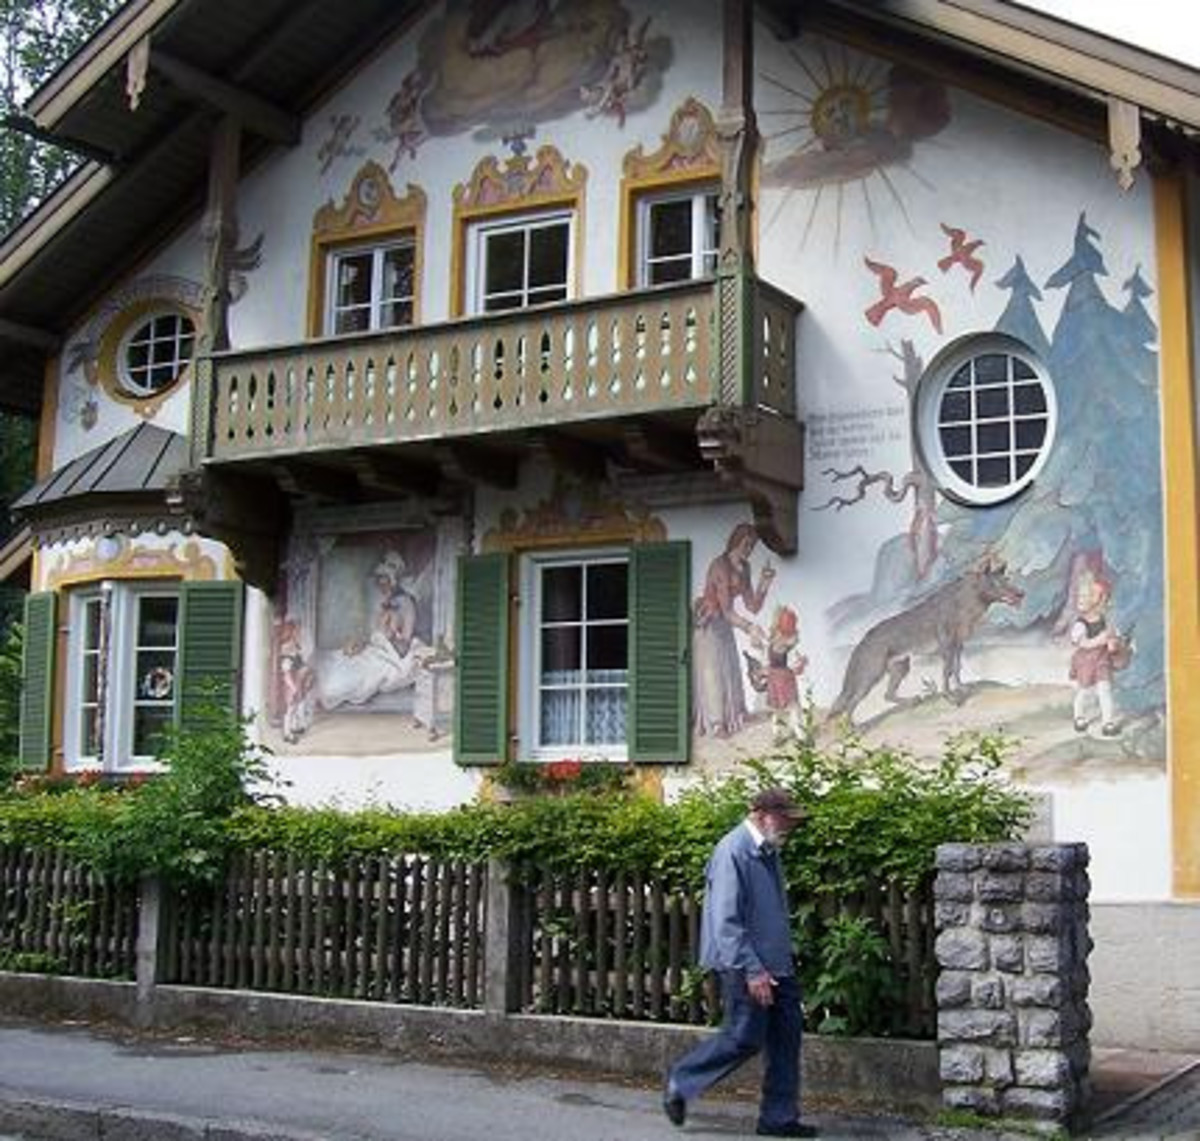 FAIRY TALES LIVE - Painted Houses of Village Oberammergau